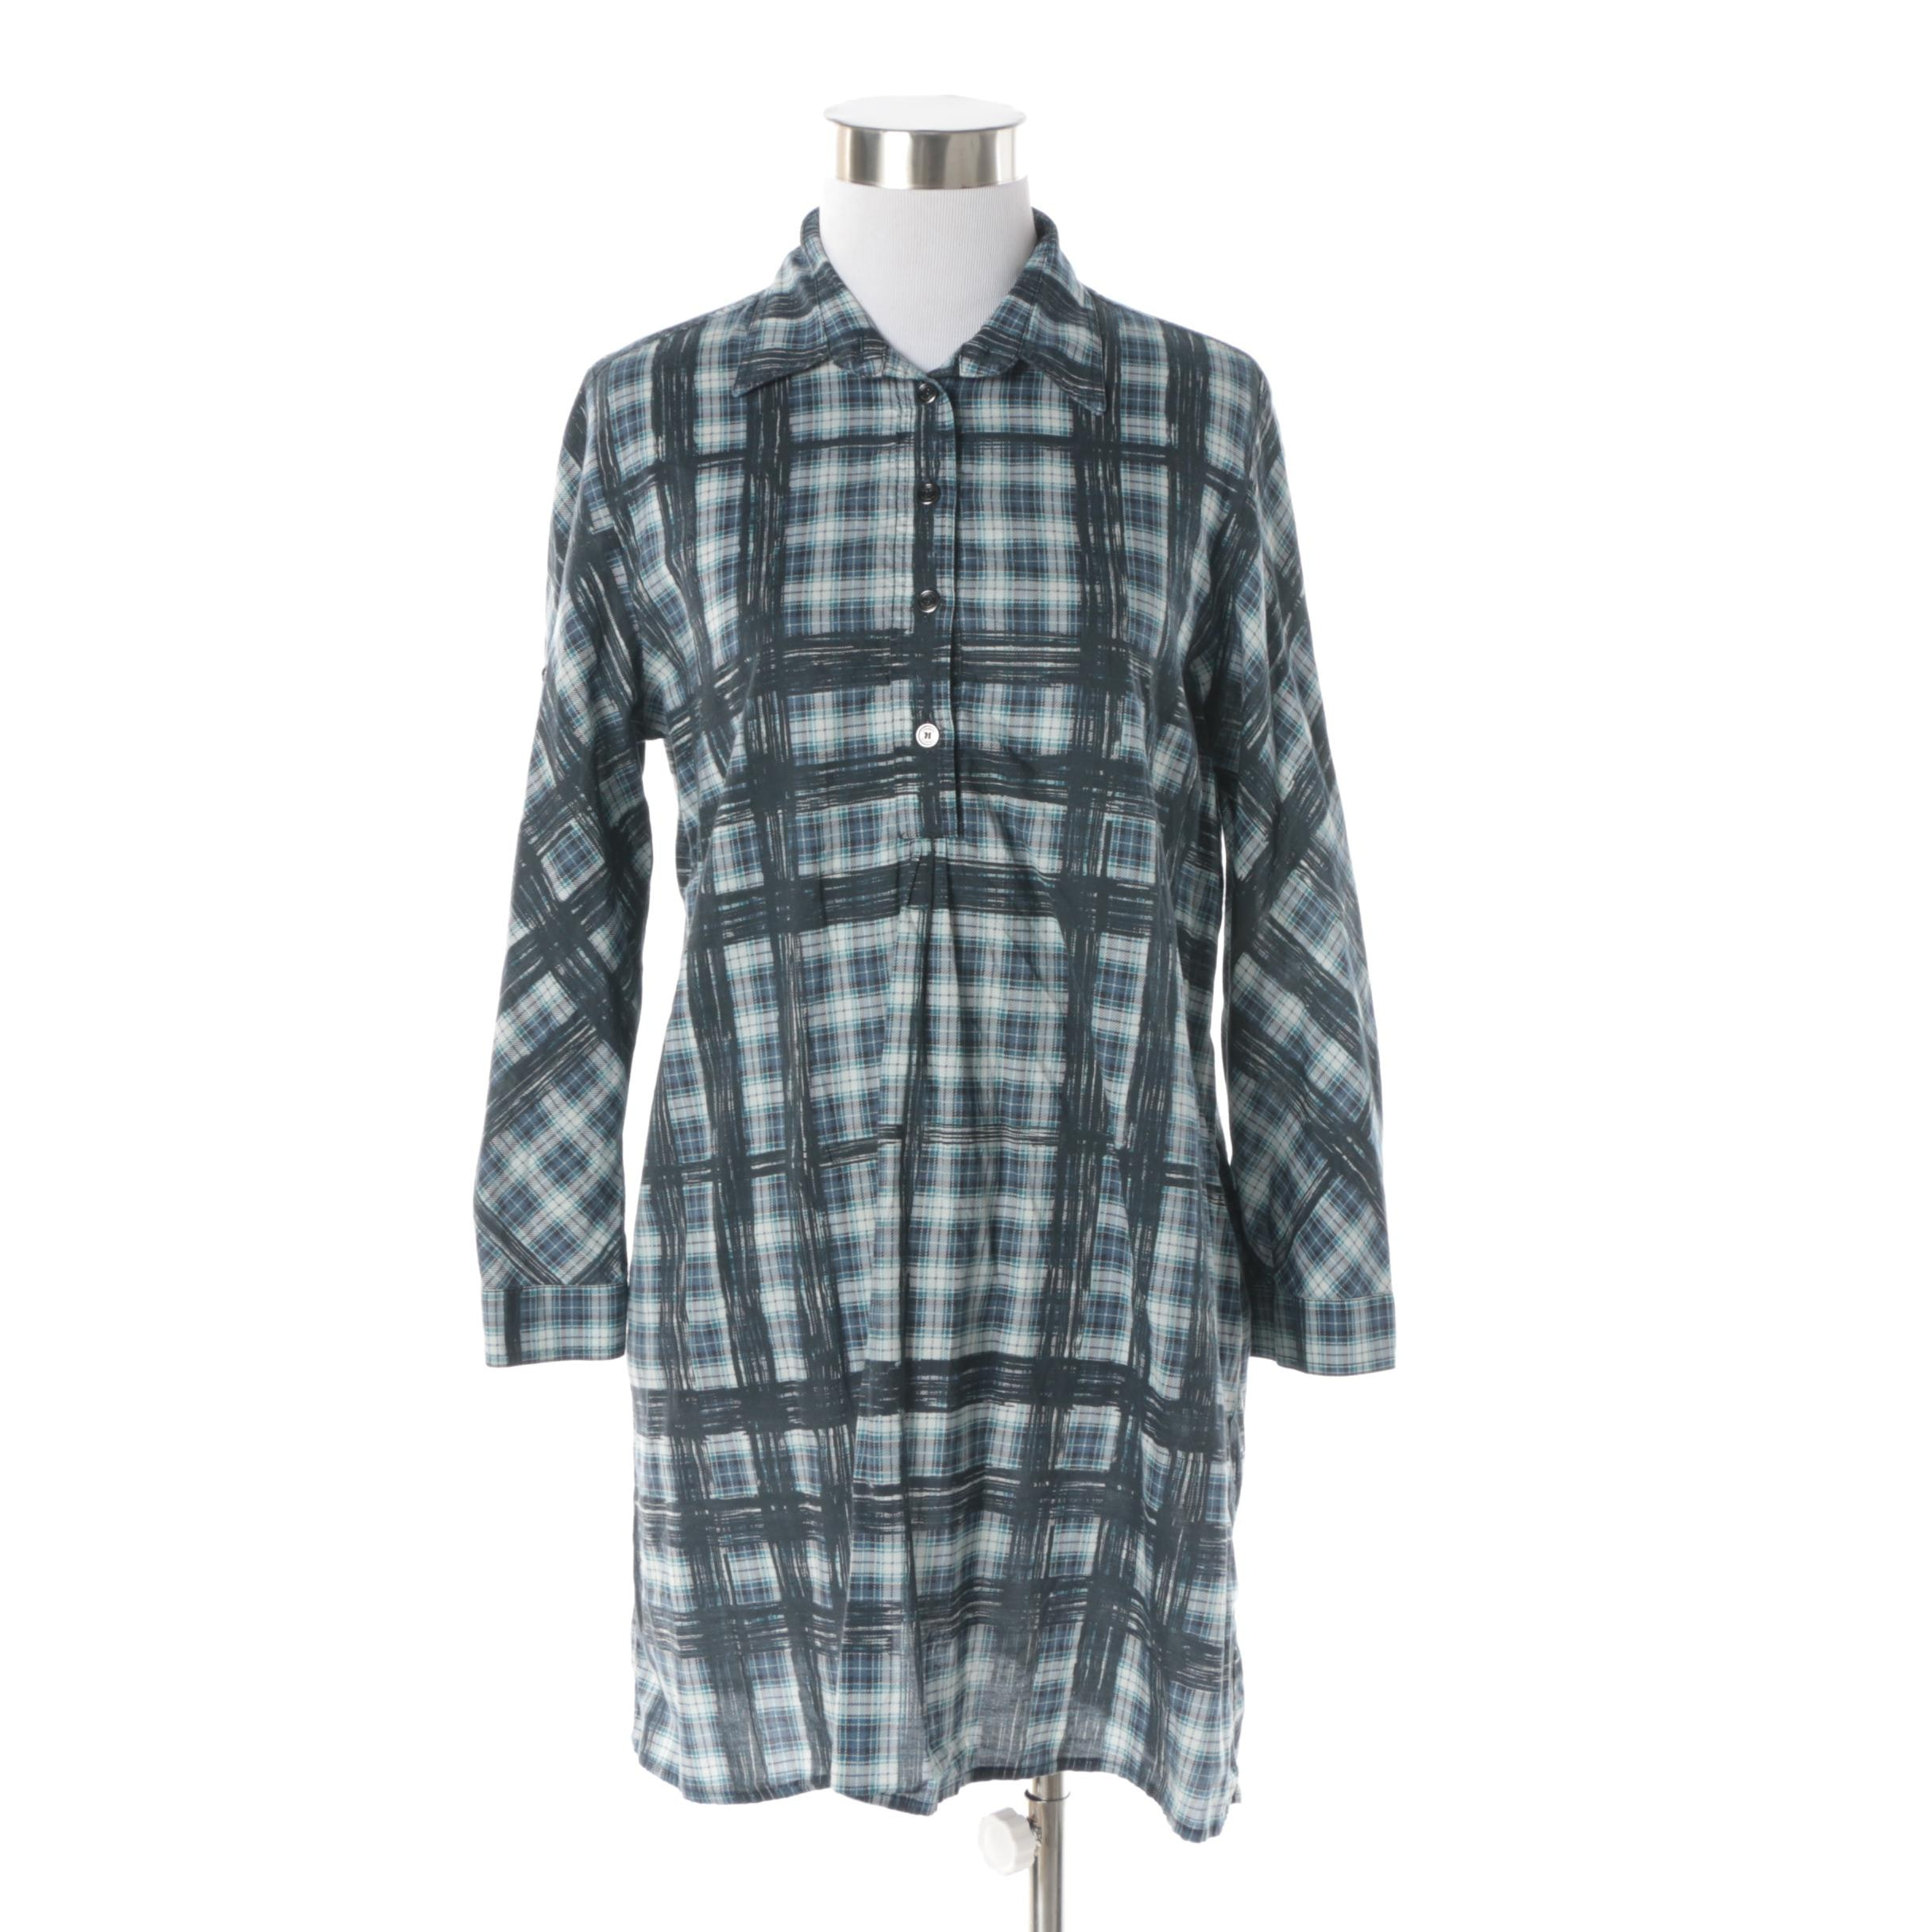 Women's Burberry Brit Blue Plaid Tunic Style Top